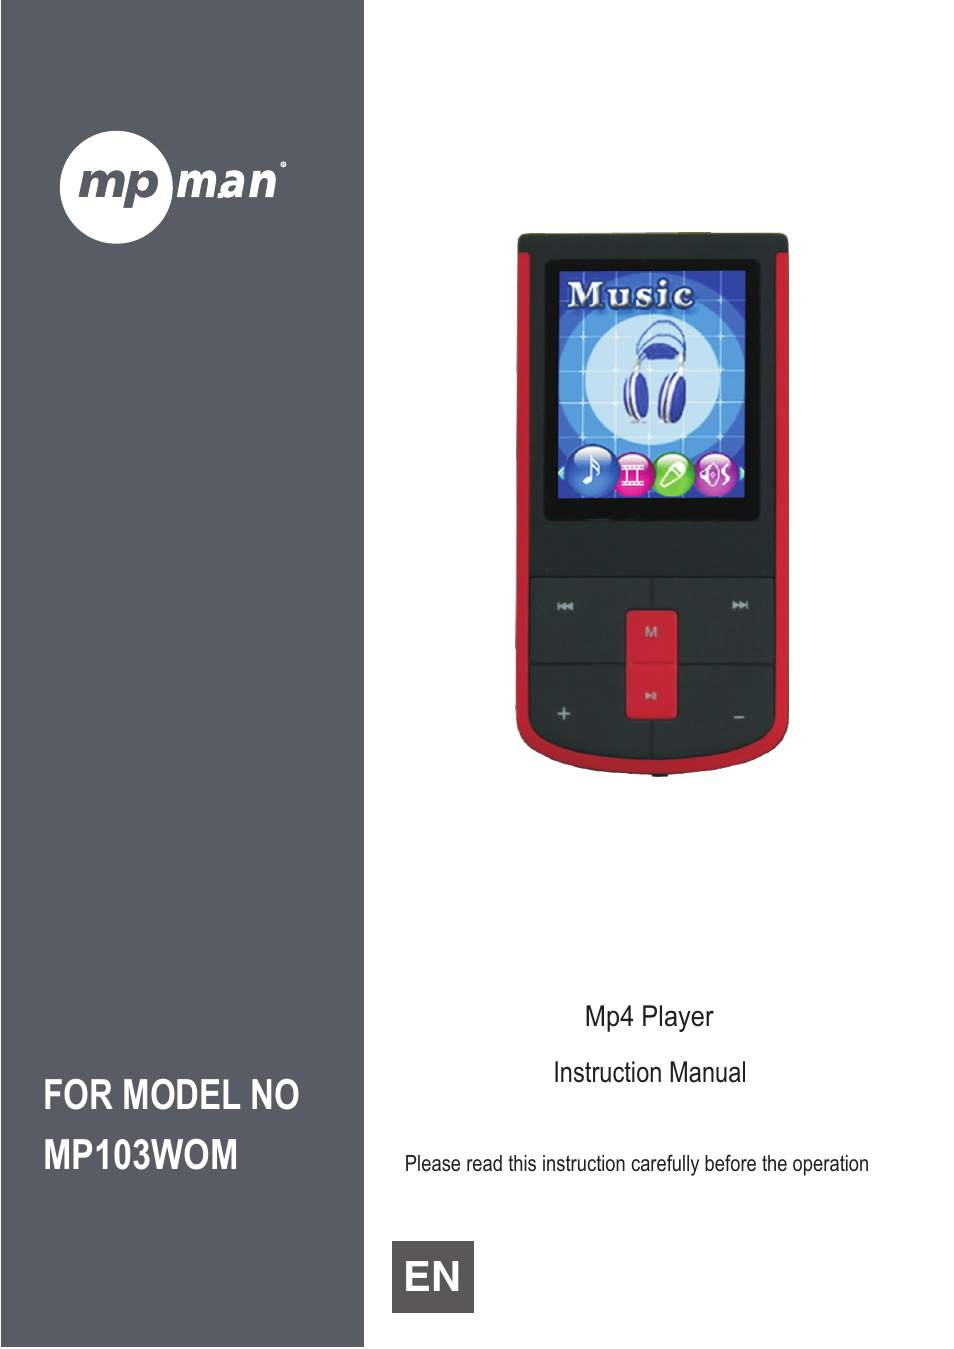 mpman mp103wom user manual 10 pages rh manualsdir com Kodak EasyShare Instruction  Manual iPod Instruction Manual